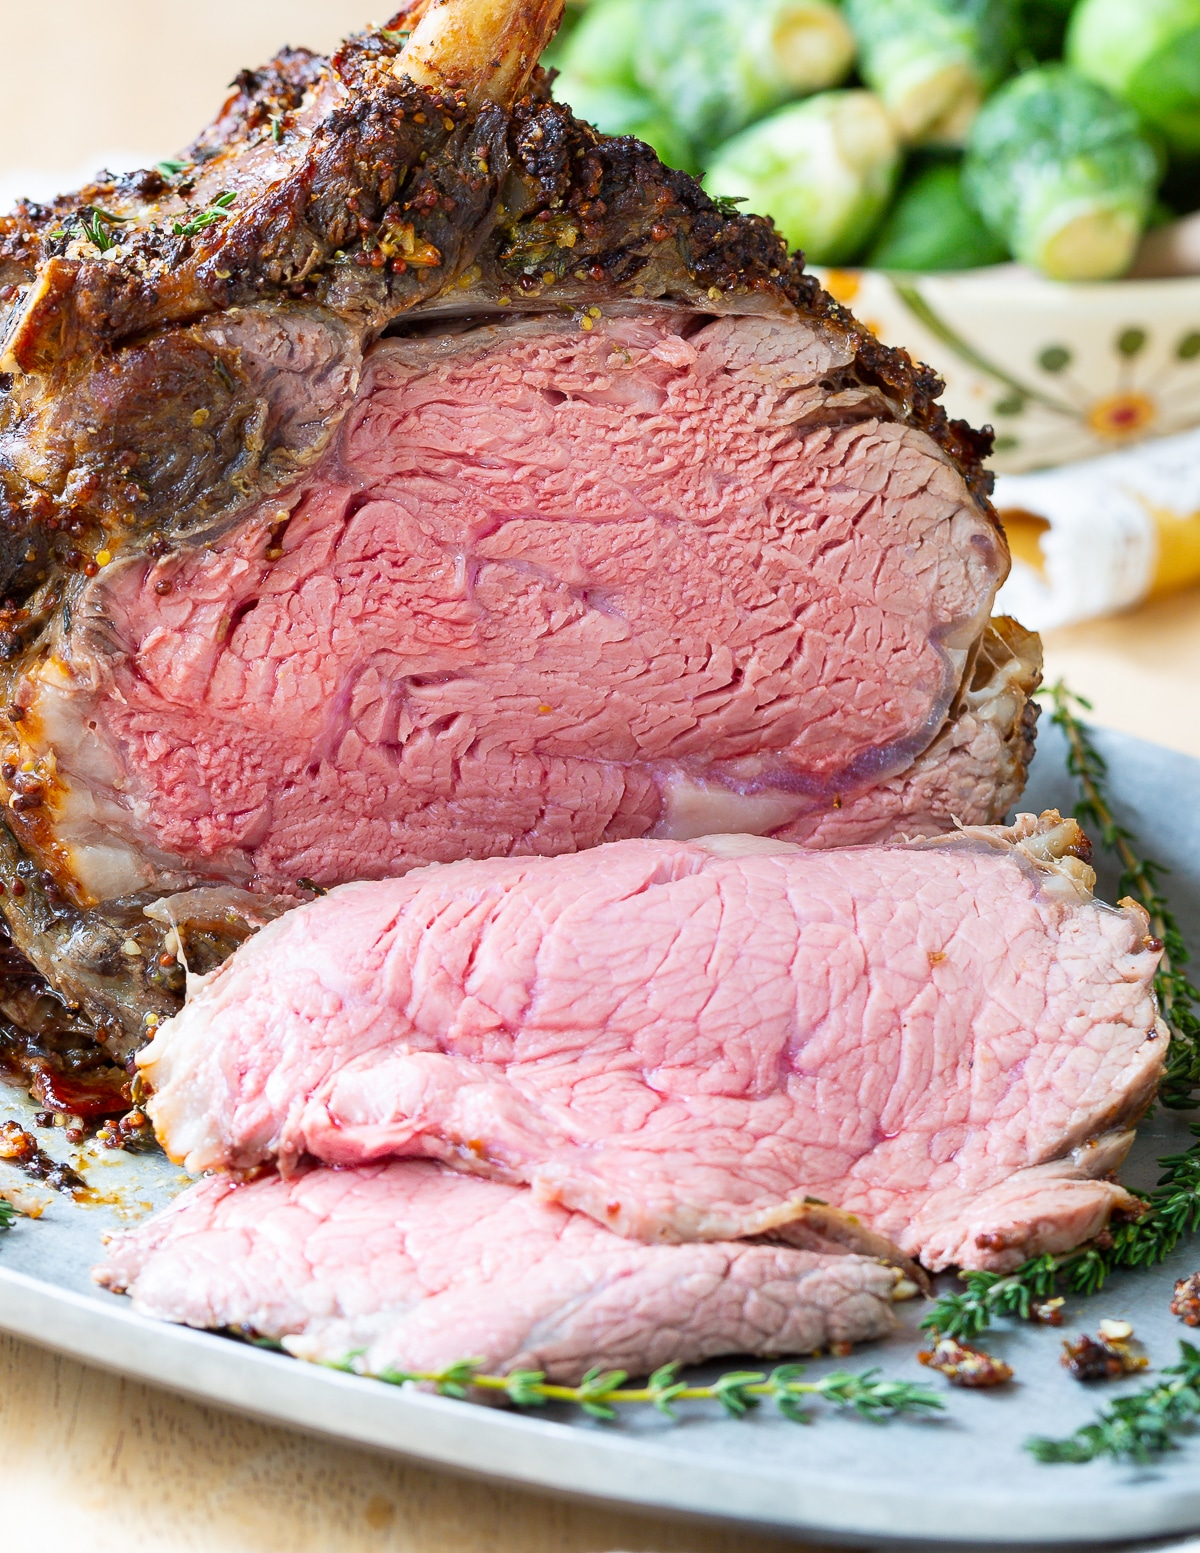 Best Fool-Proof Standing Rib Roast Recipe #holiday #roast #beef #christmas #dinnerparty